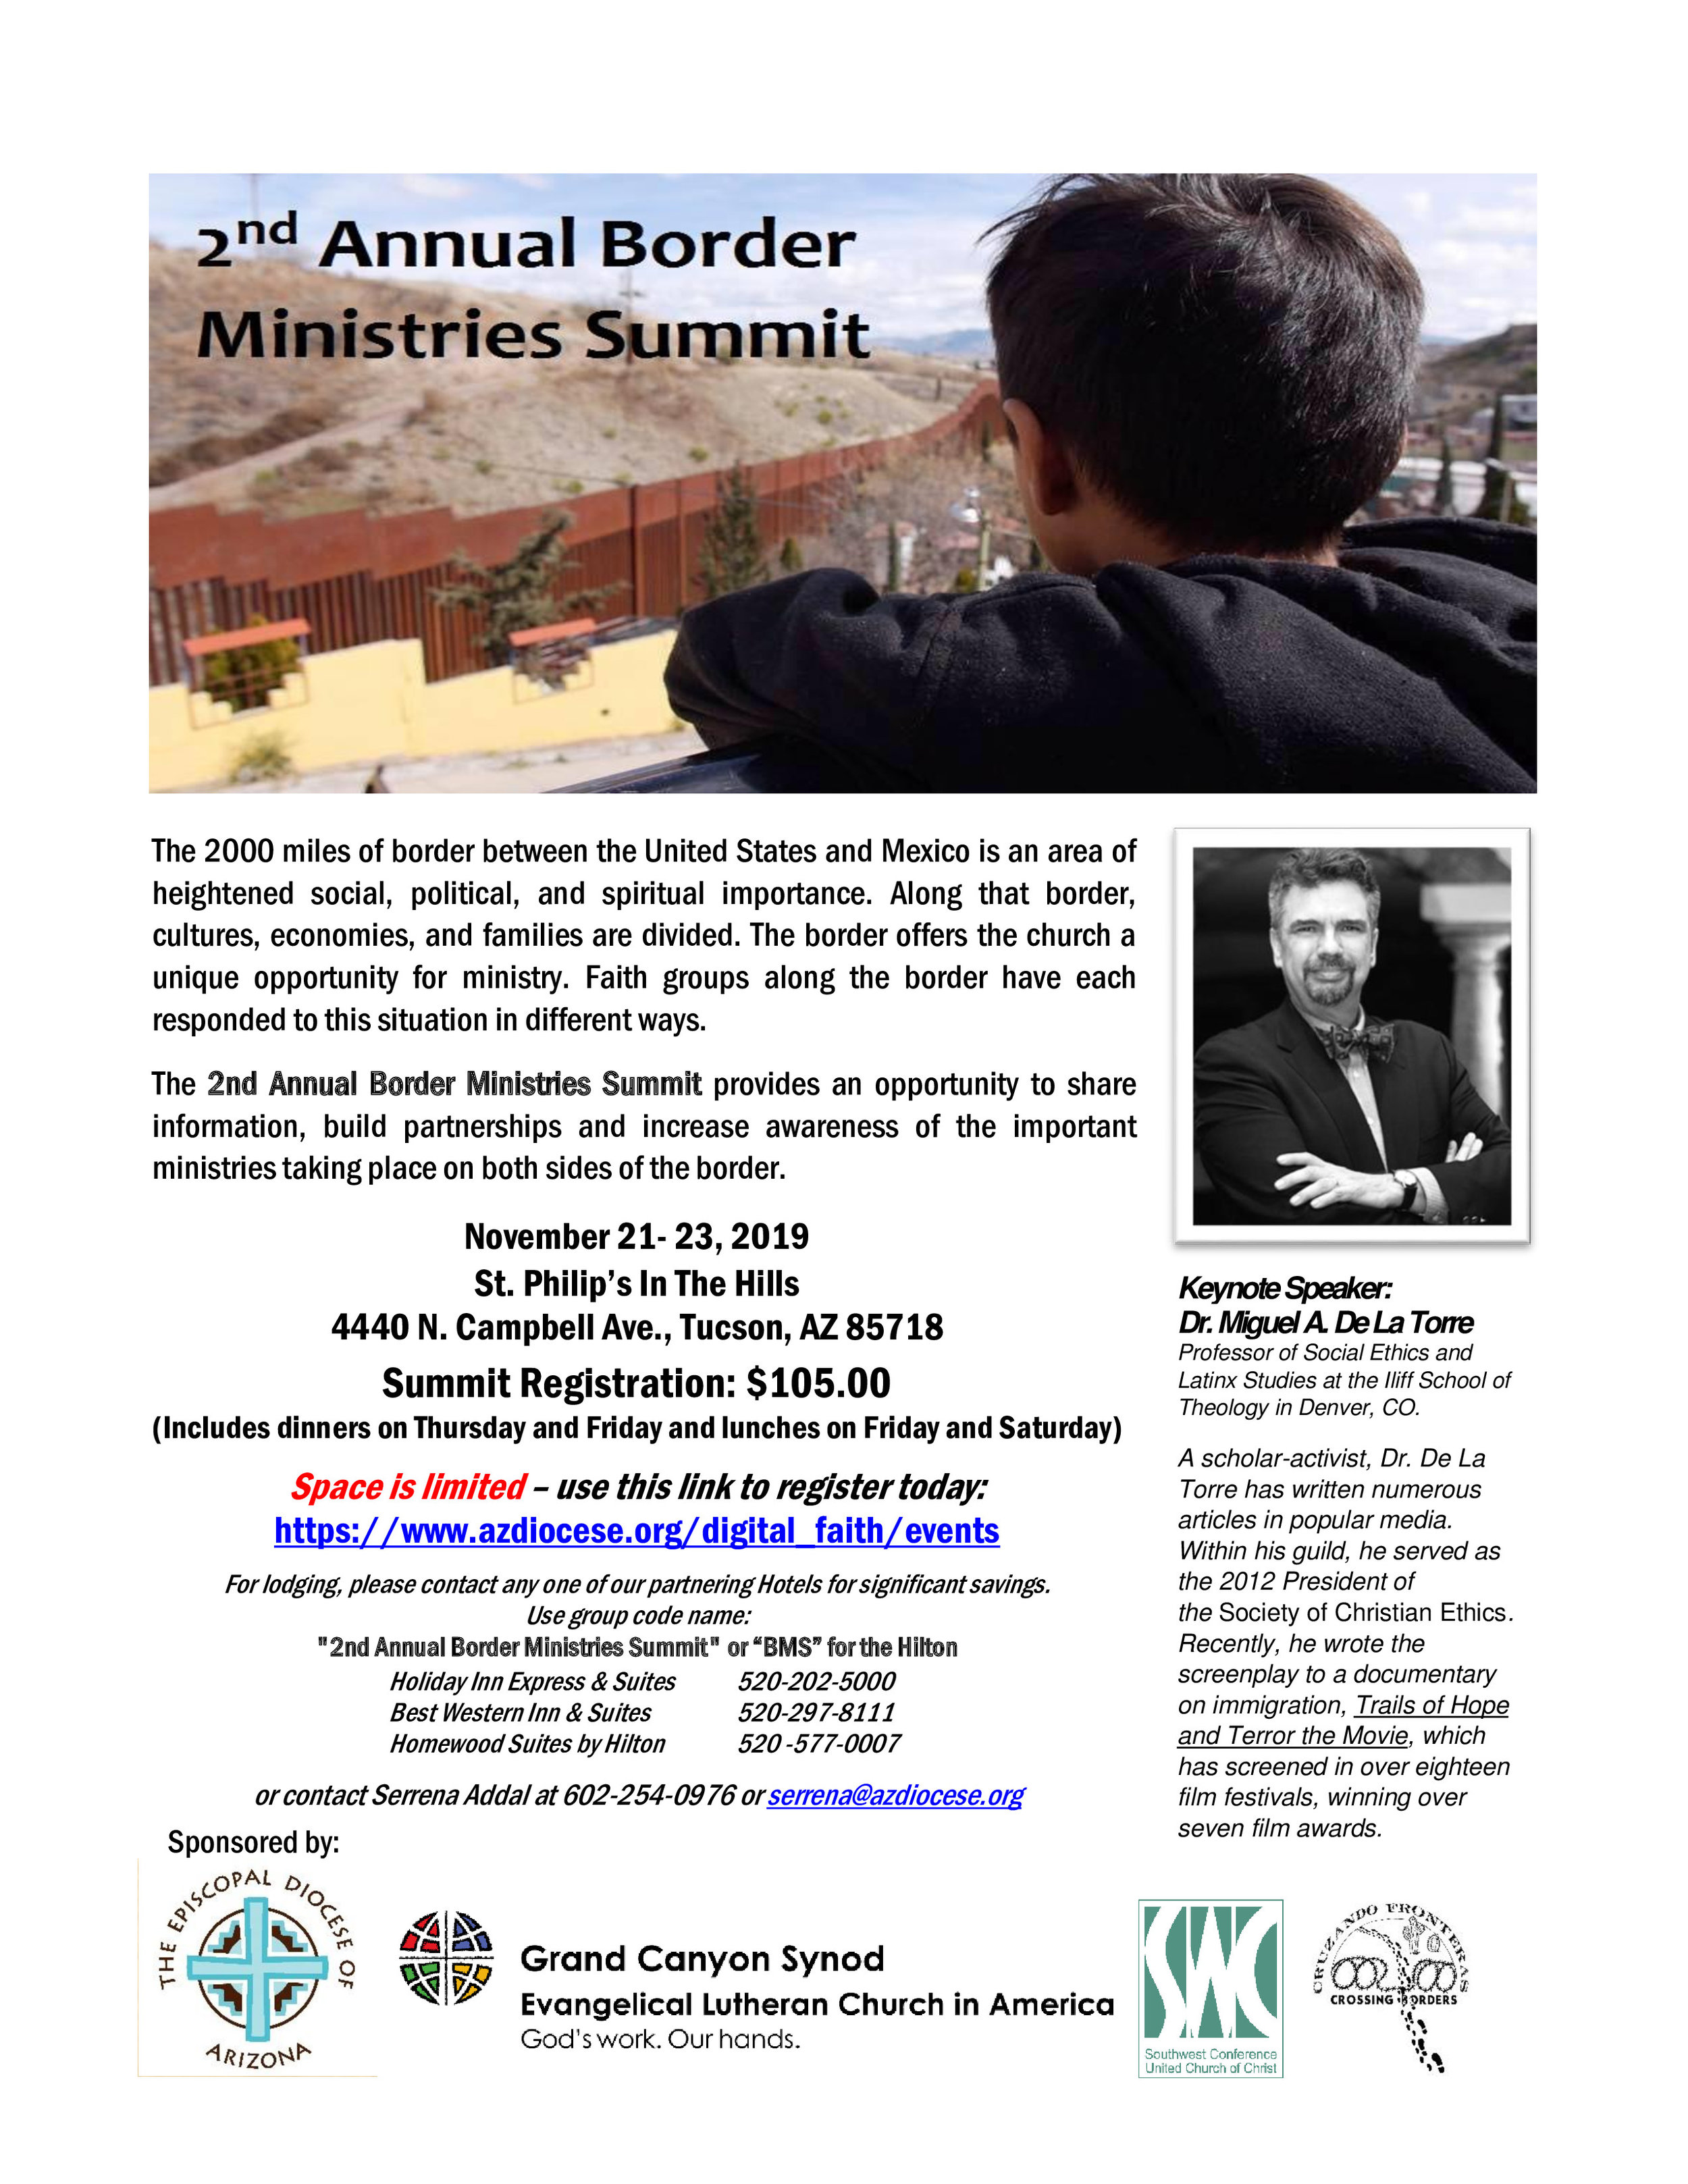 Border Summit Flyer 2019.jpg